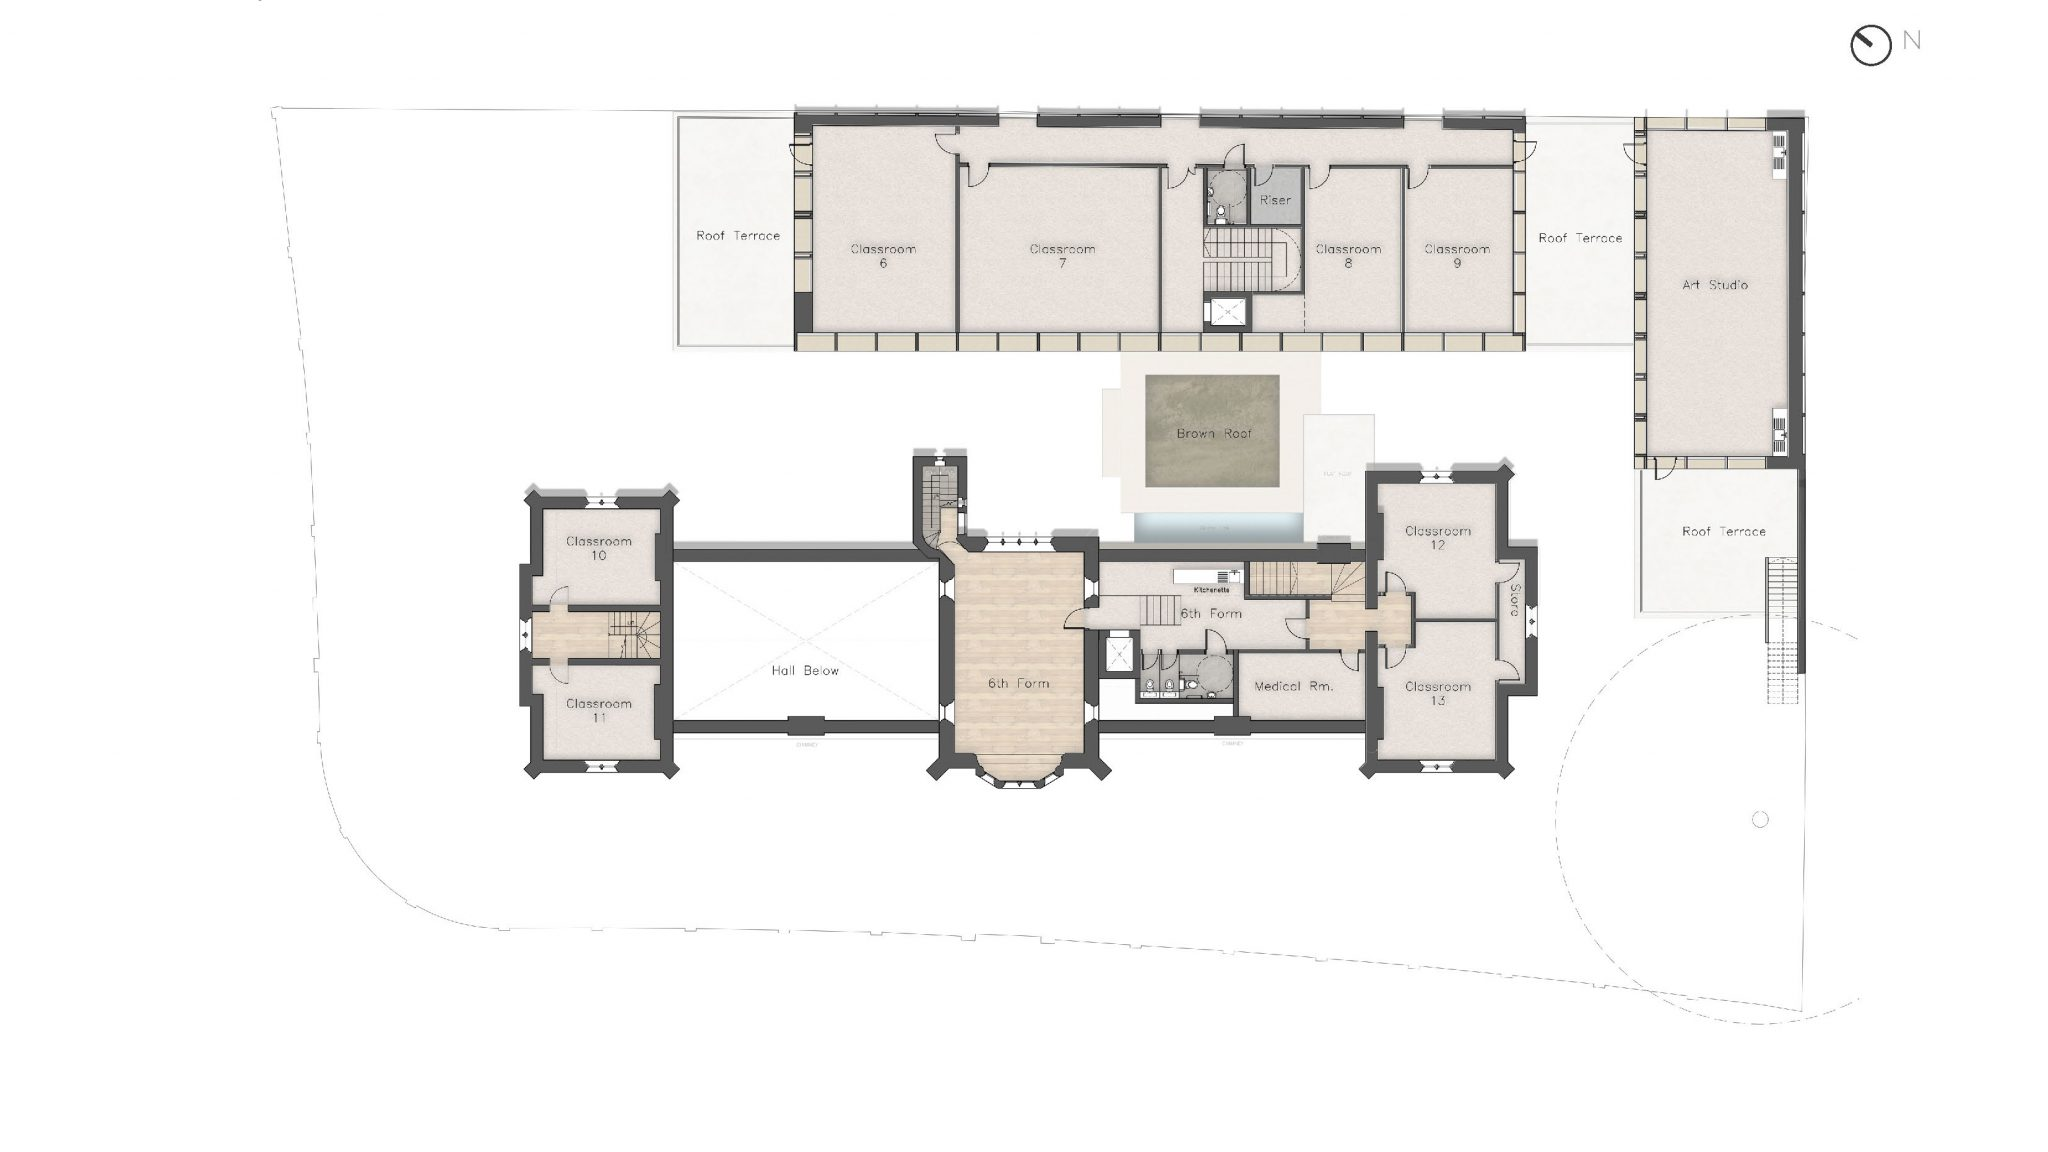 Plan, First Floor - The Castle Club School, Fulham, London SW6